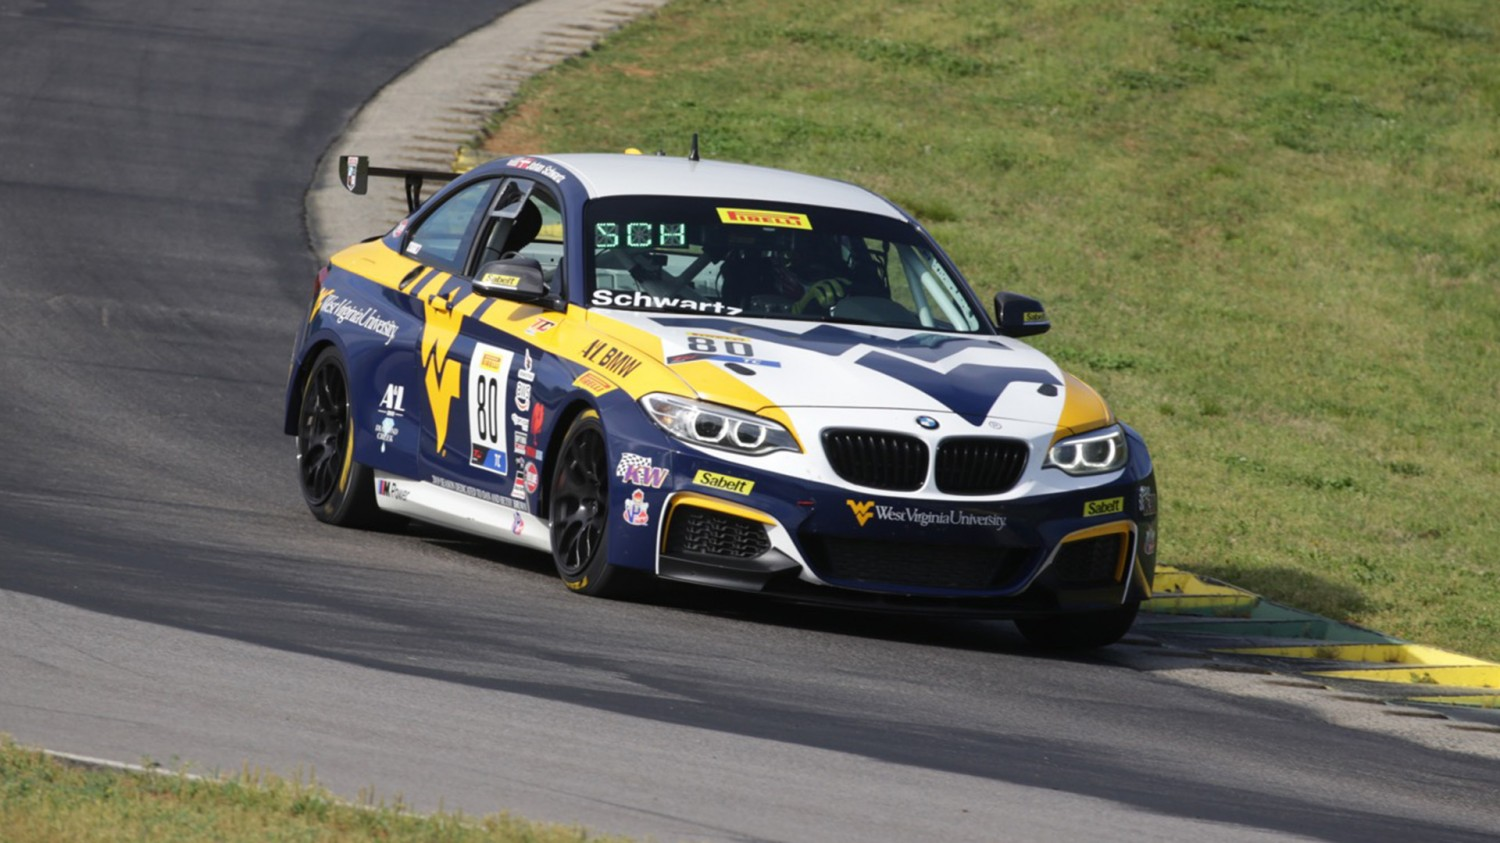 Schwartz Opens VIR Weekend with Quickest Practice 1 Time